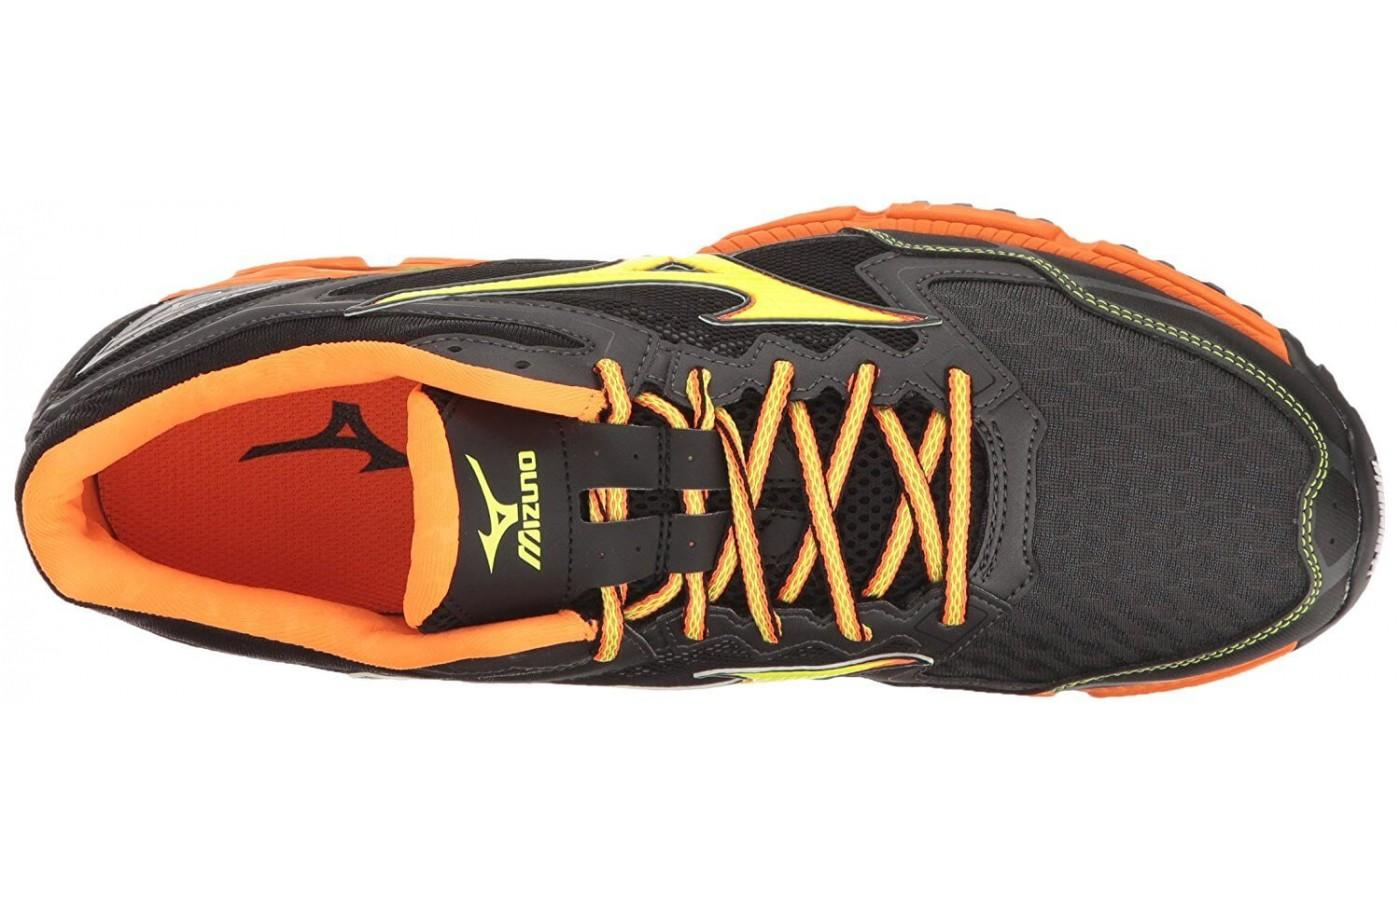 The upper is constructed using the Dynamotion Fit technology.